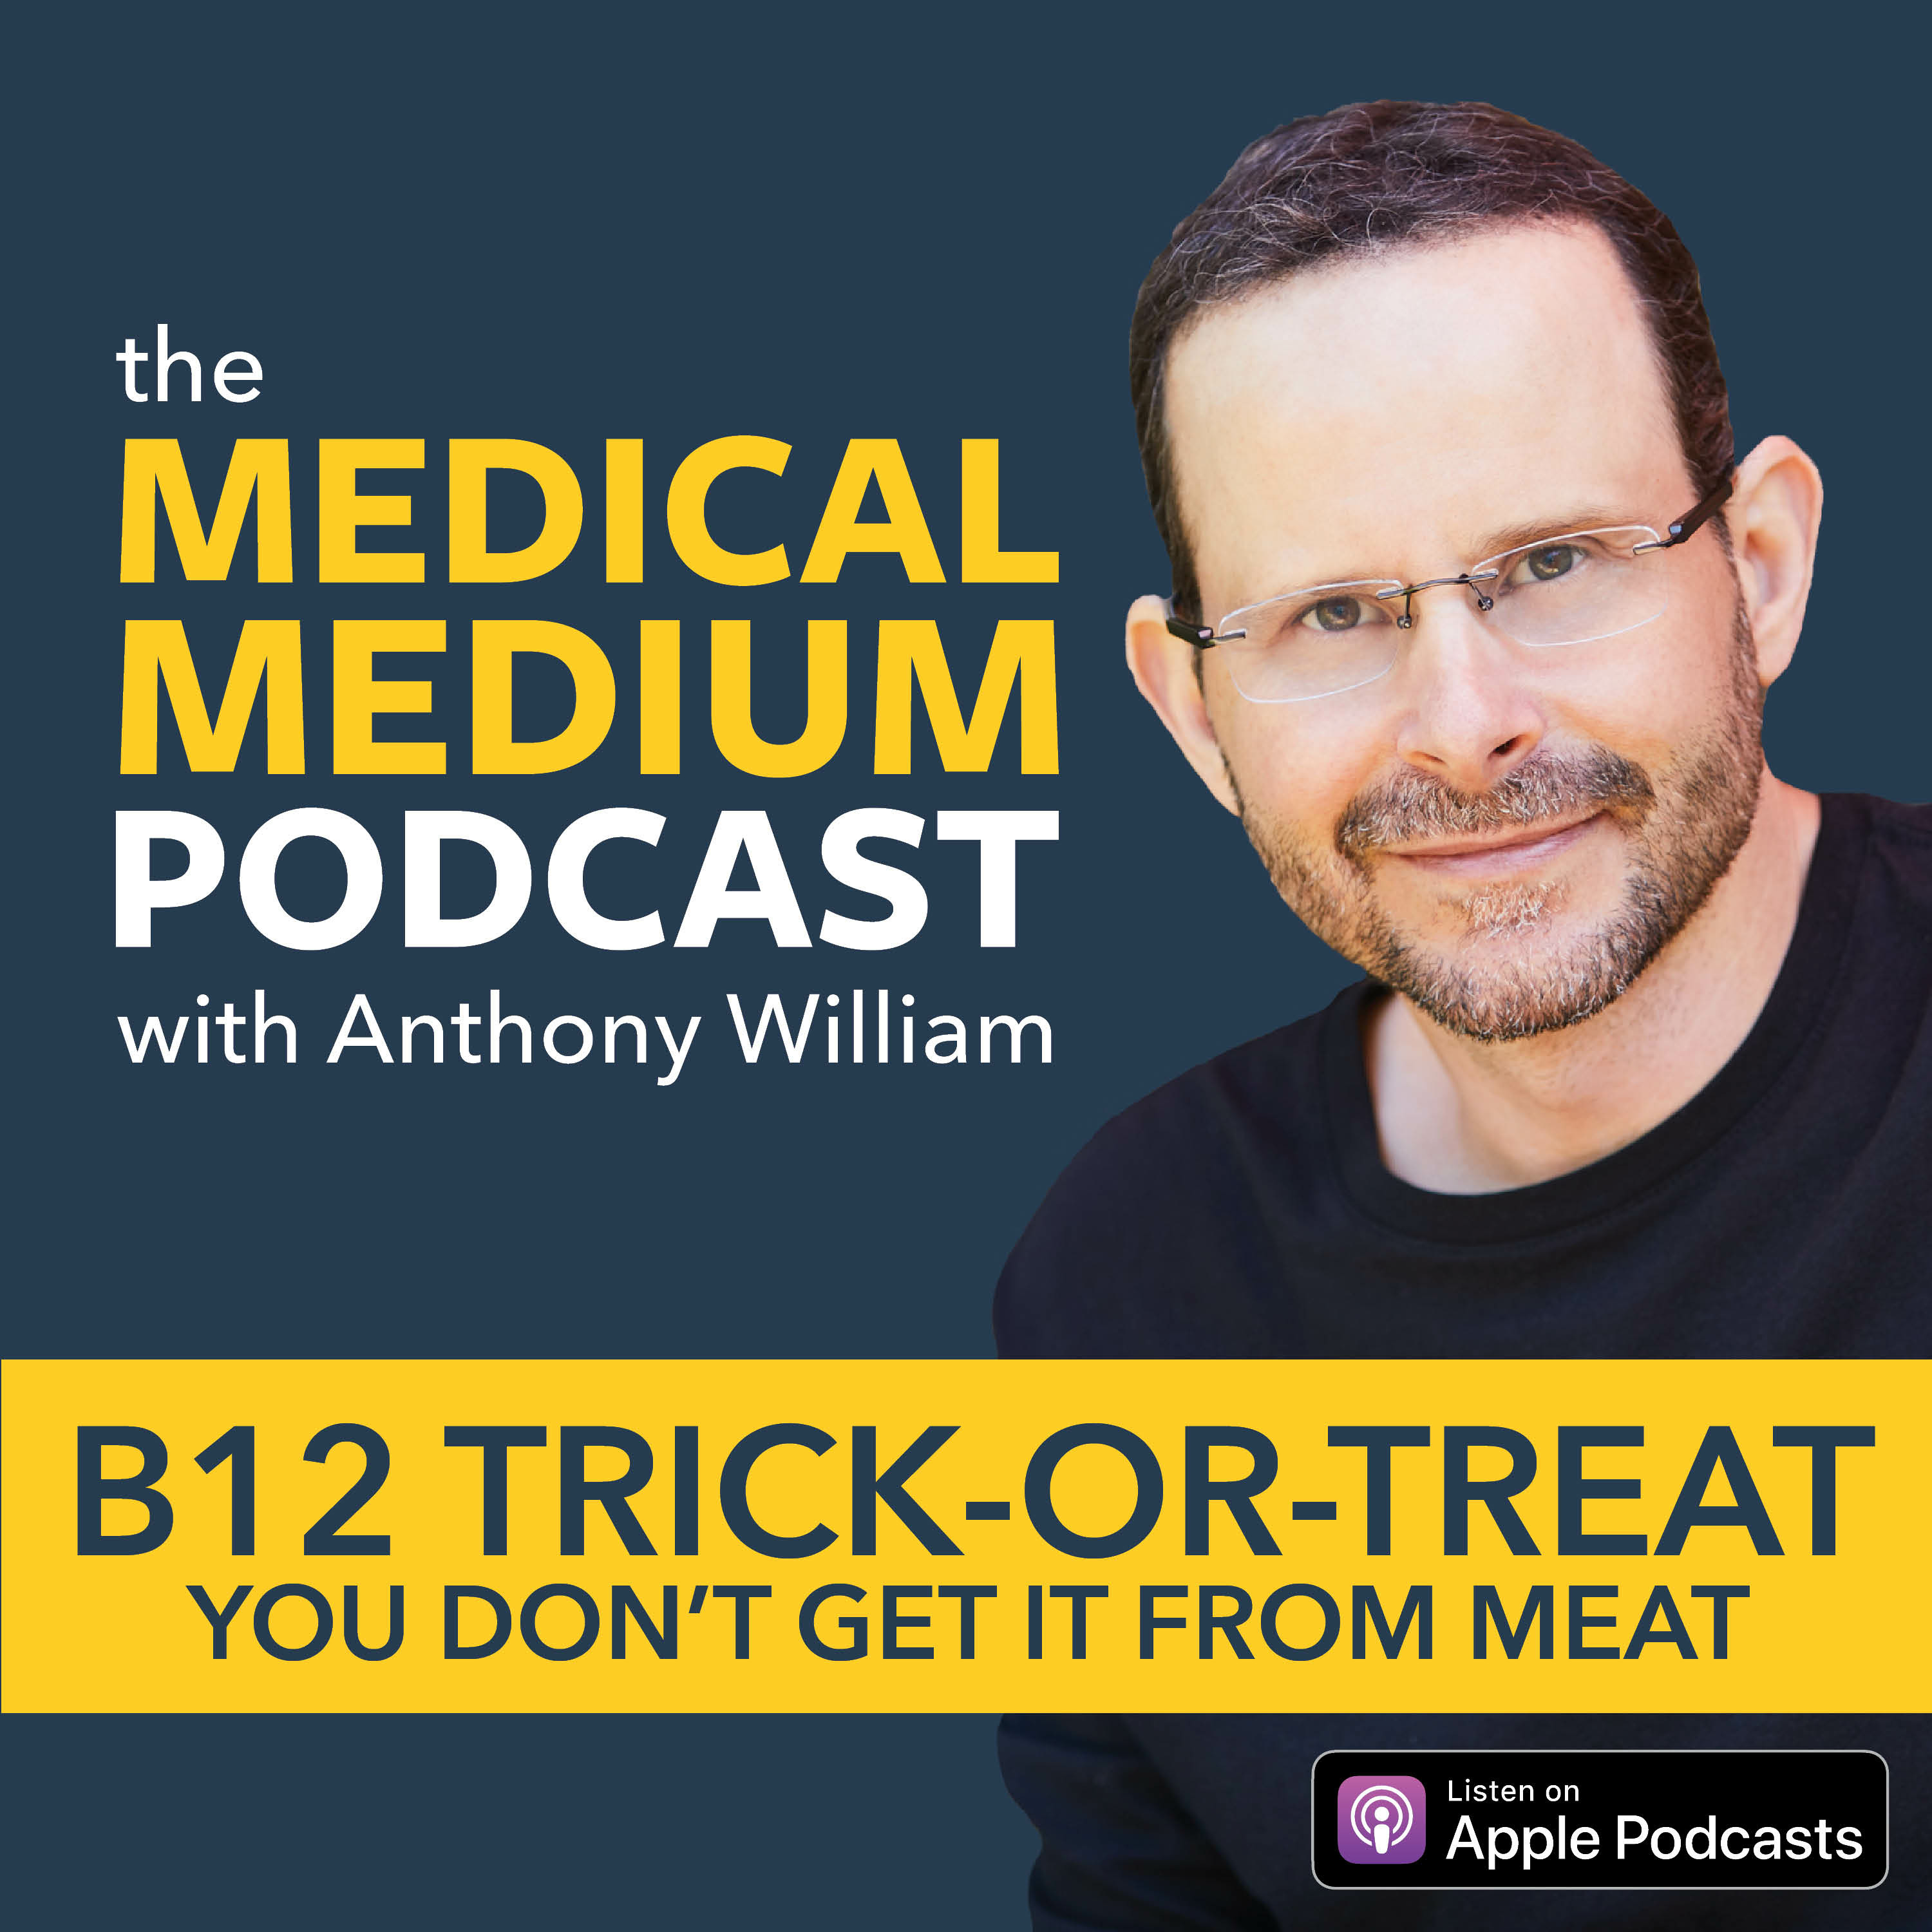 012 B12 Trick-or-Treat: You Don't Get It From Meat